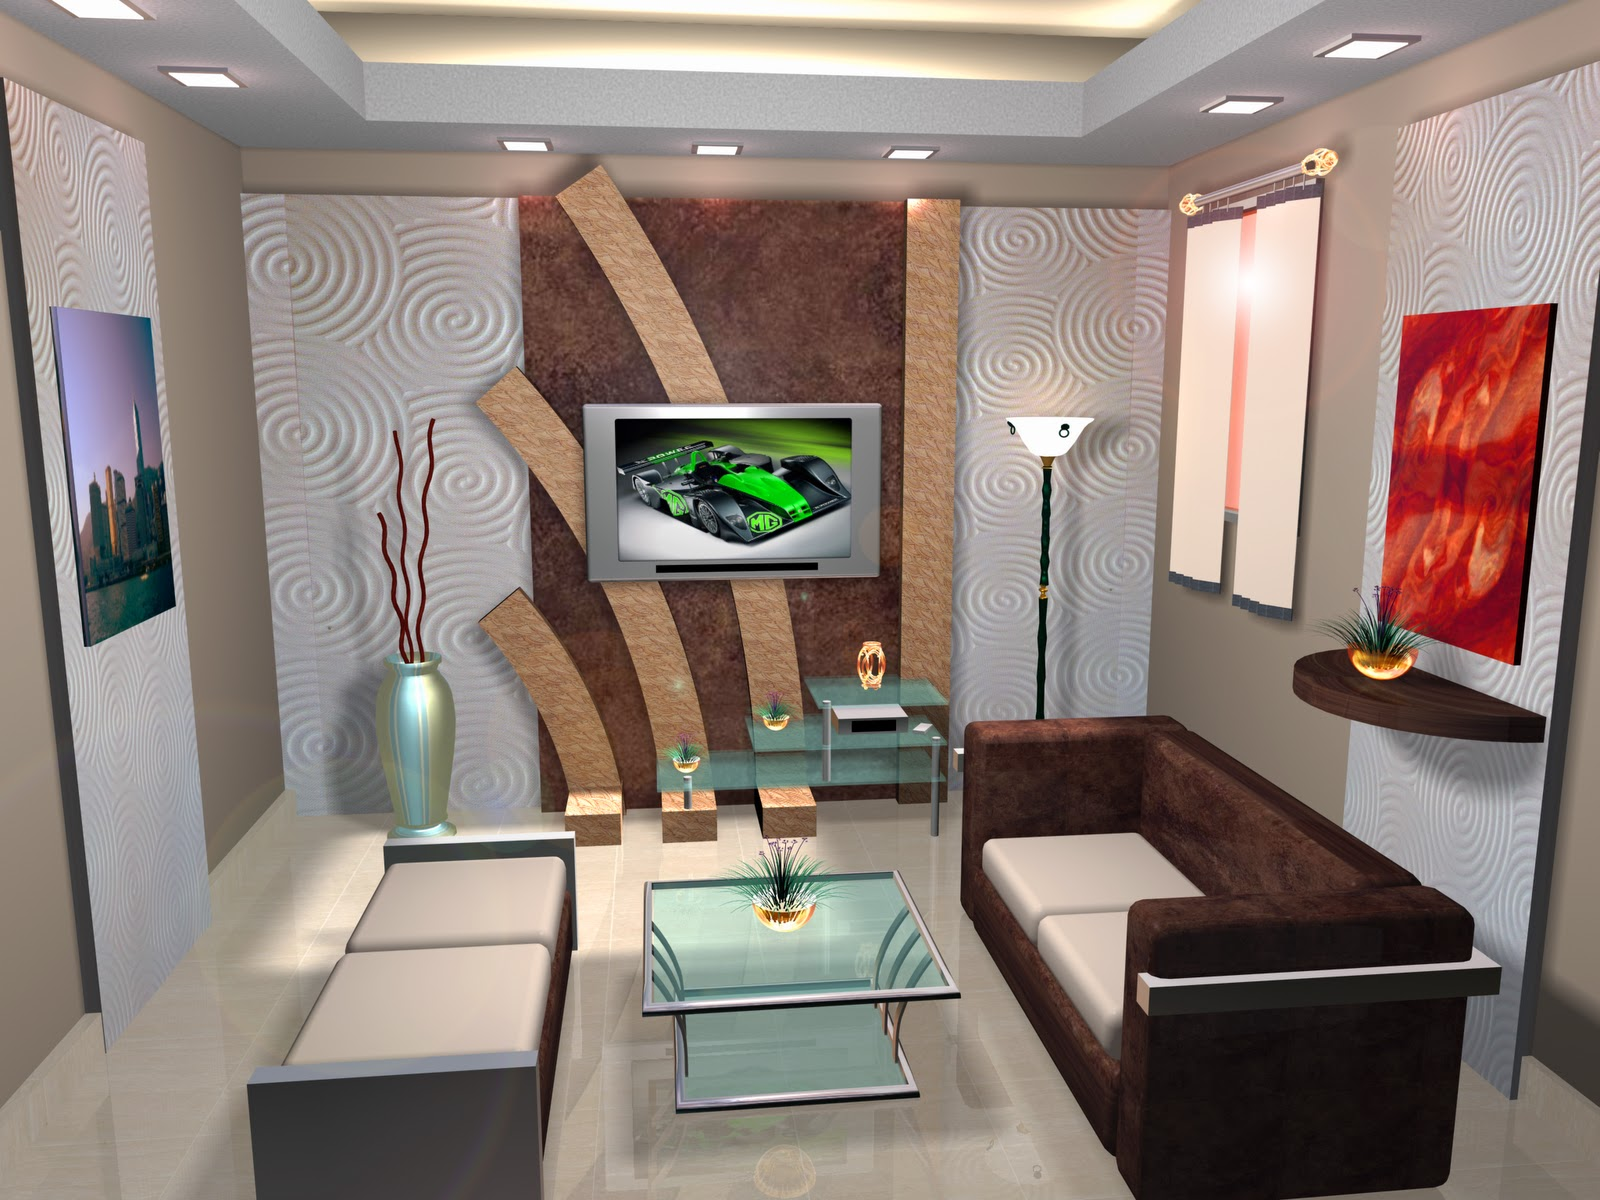 Sample_009 Paint Wall Home Interior Design on home insulation walls, home paint exterior, home exterior walls, paint room interior walls,